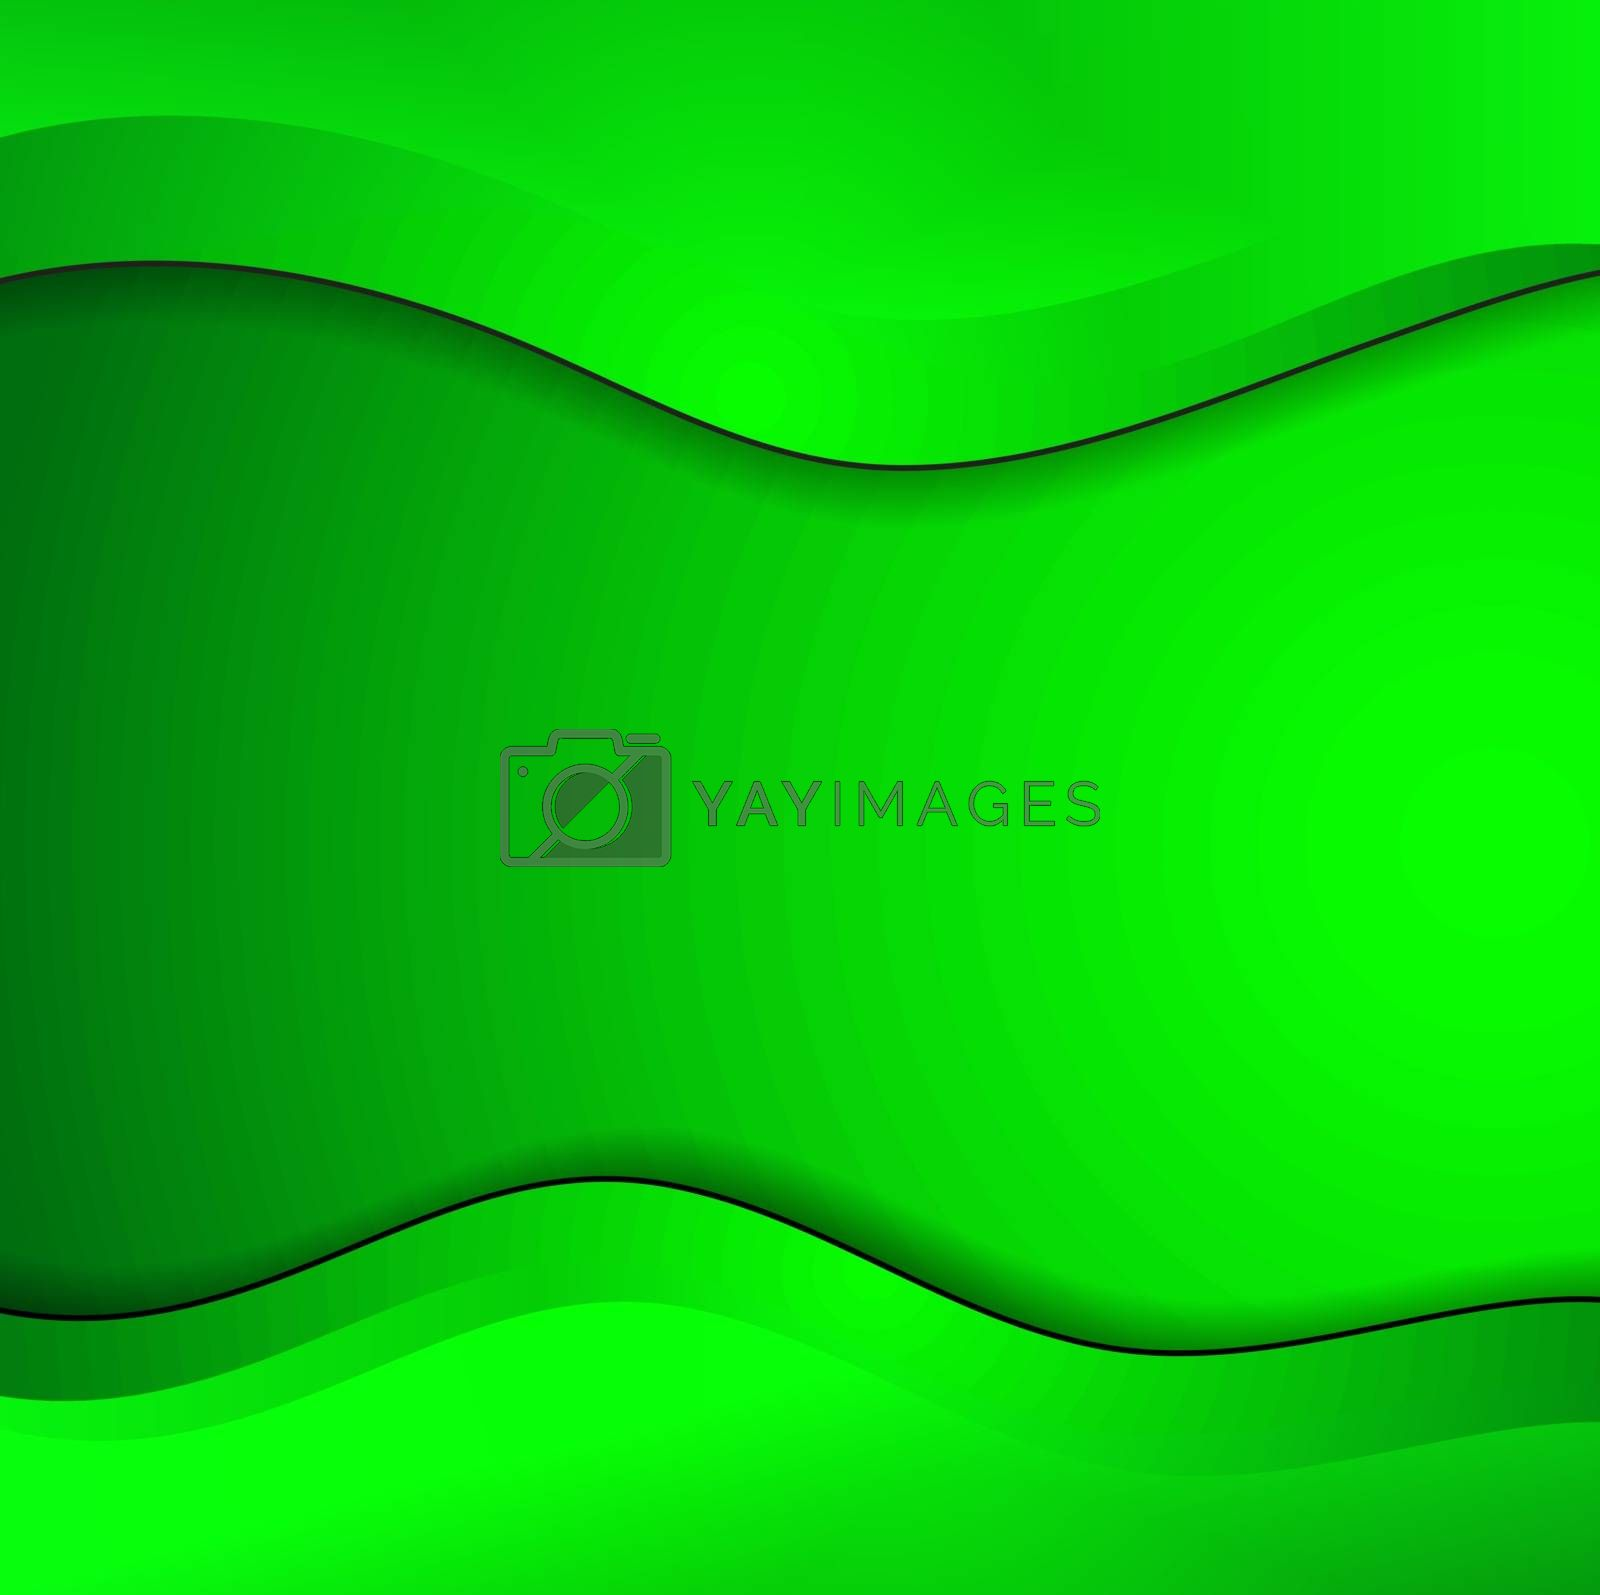 GreGreen cloth texture backgrounden cloth texture background